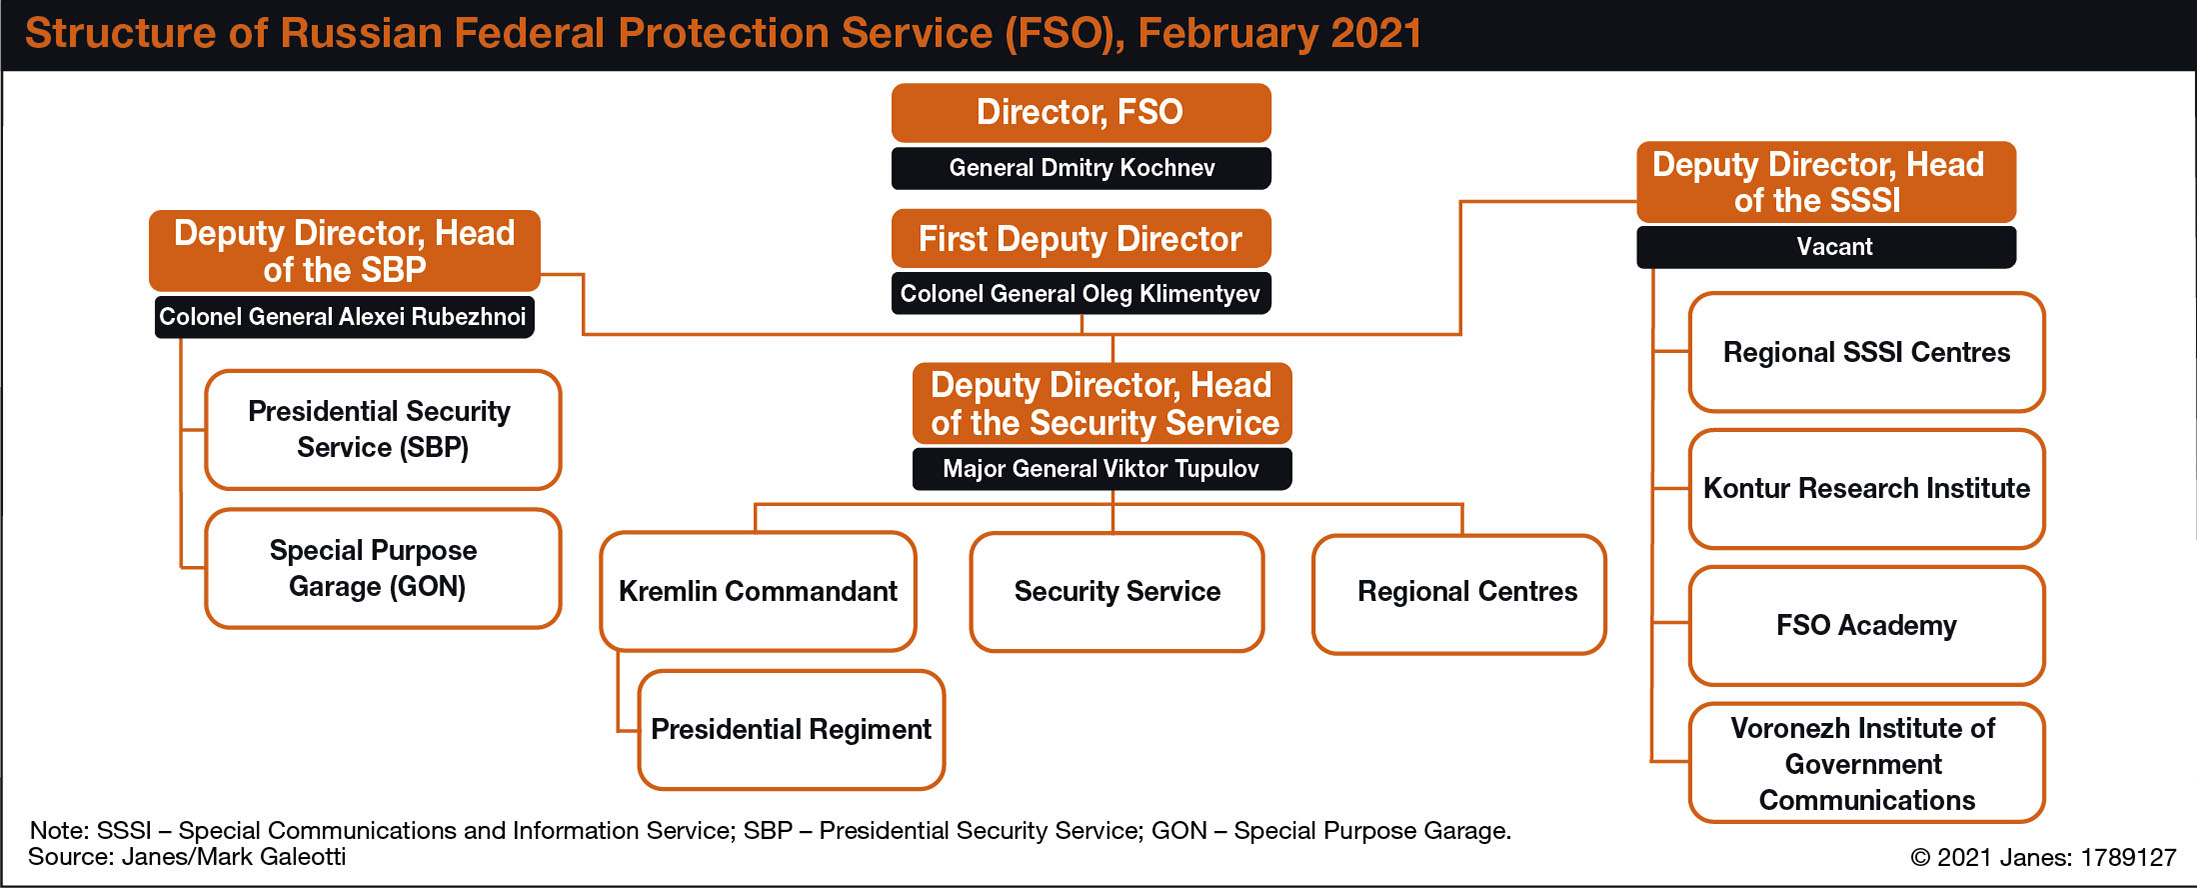 Structure of Russian Federal Protection Service (FSO), February 2021 (Janes/Mark Galeotti)